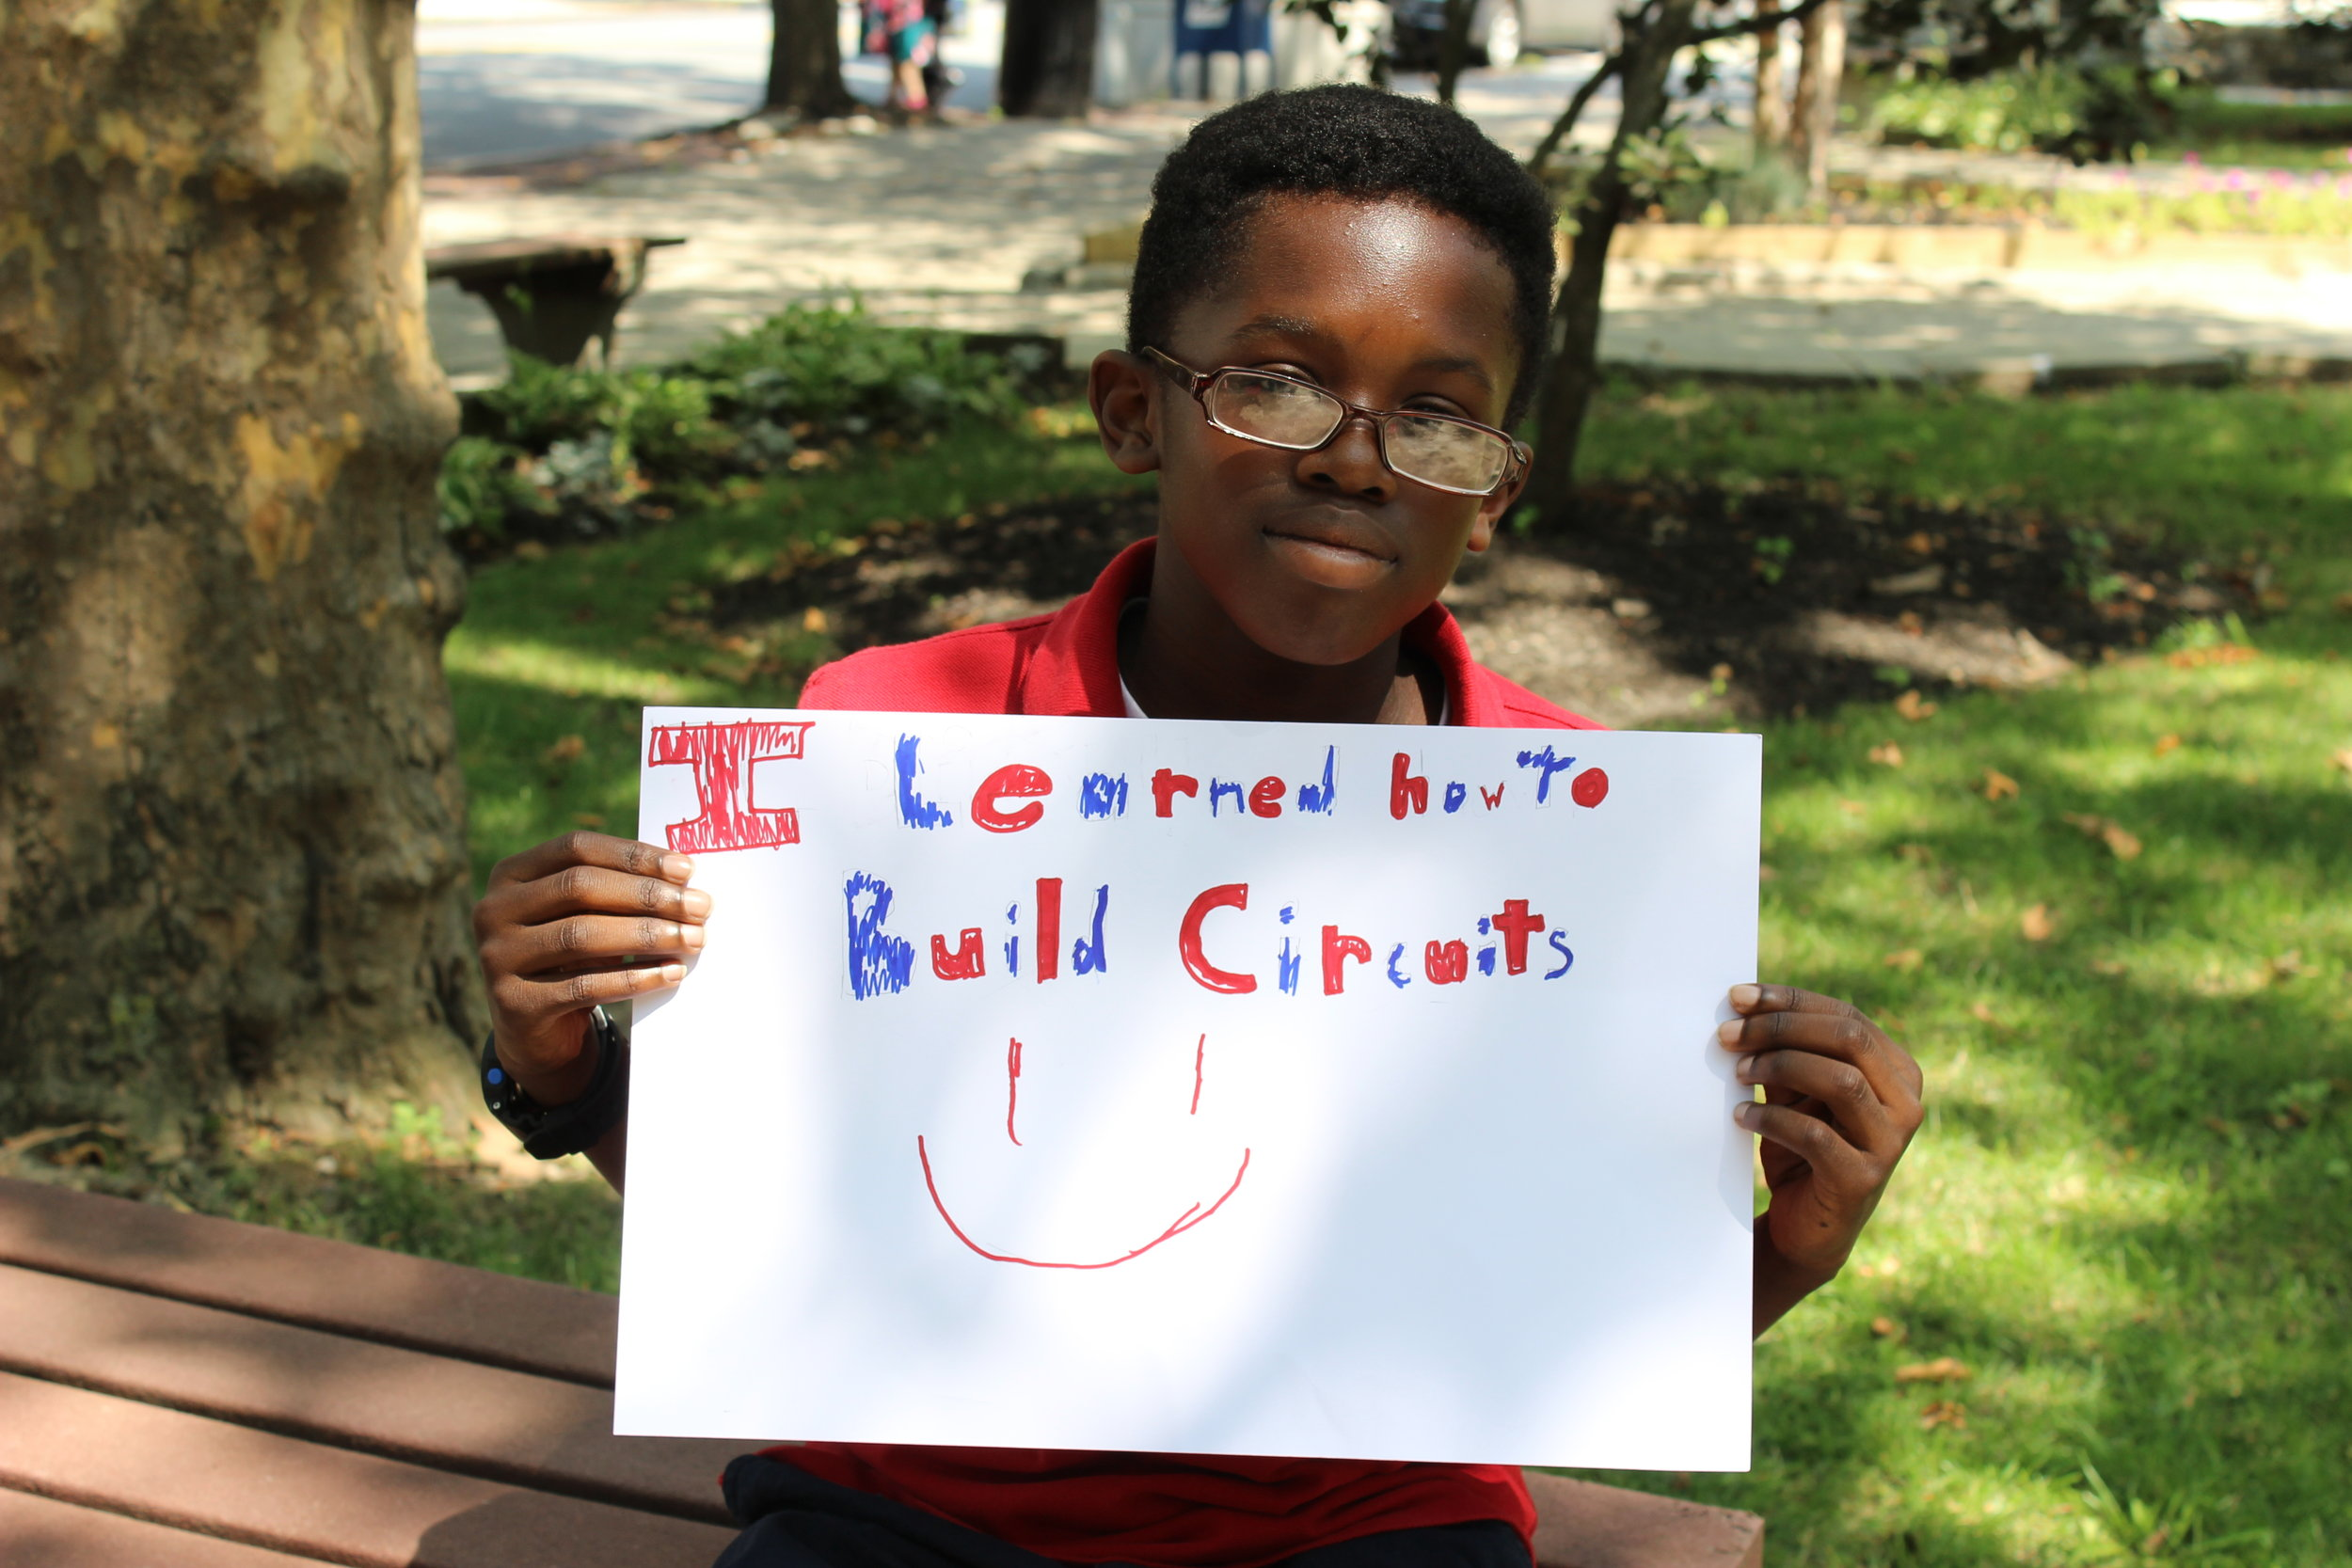 Nate, 6th grade: I learned how to build circuits. :)